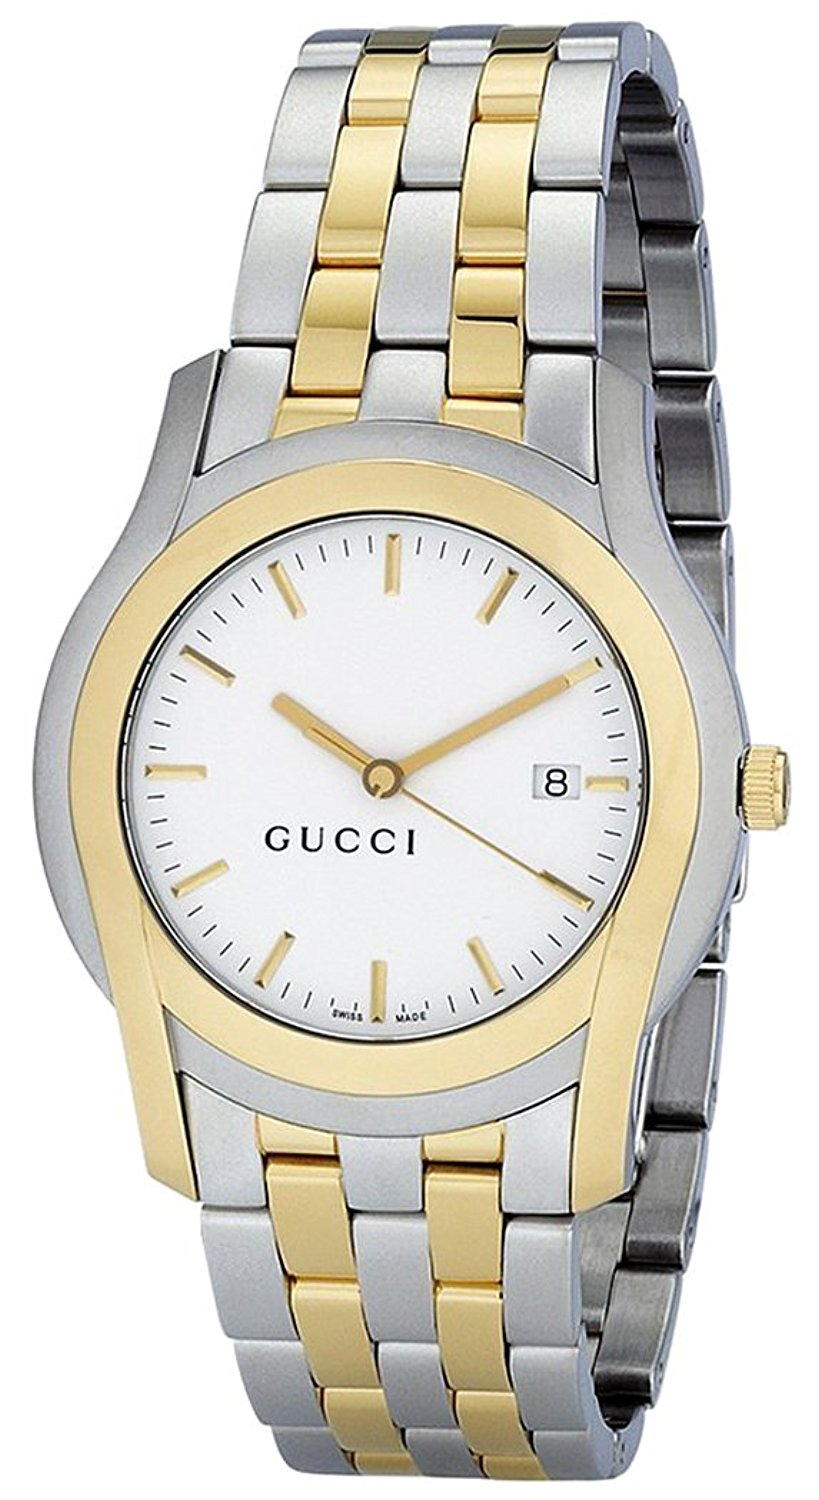 aa8a6187f3a Gucci Men s G Class 5500 XL Gold-Tone Stainless Steel Watch YA055214